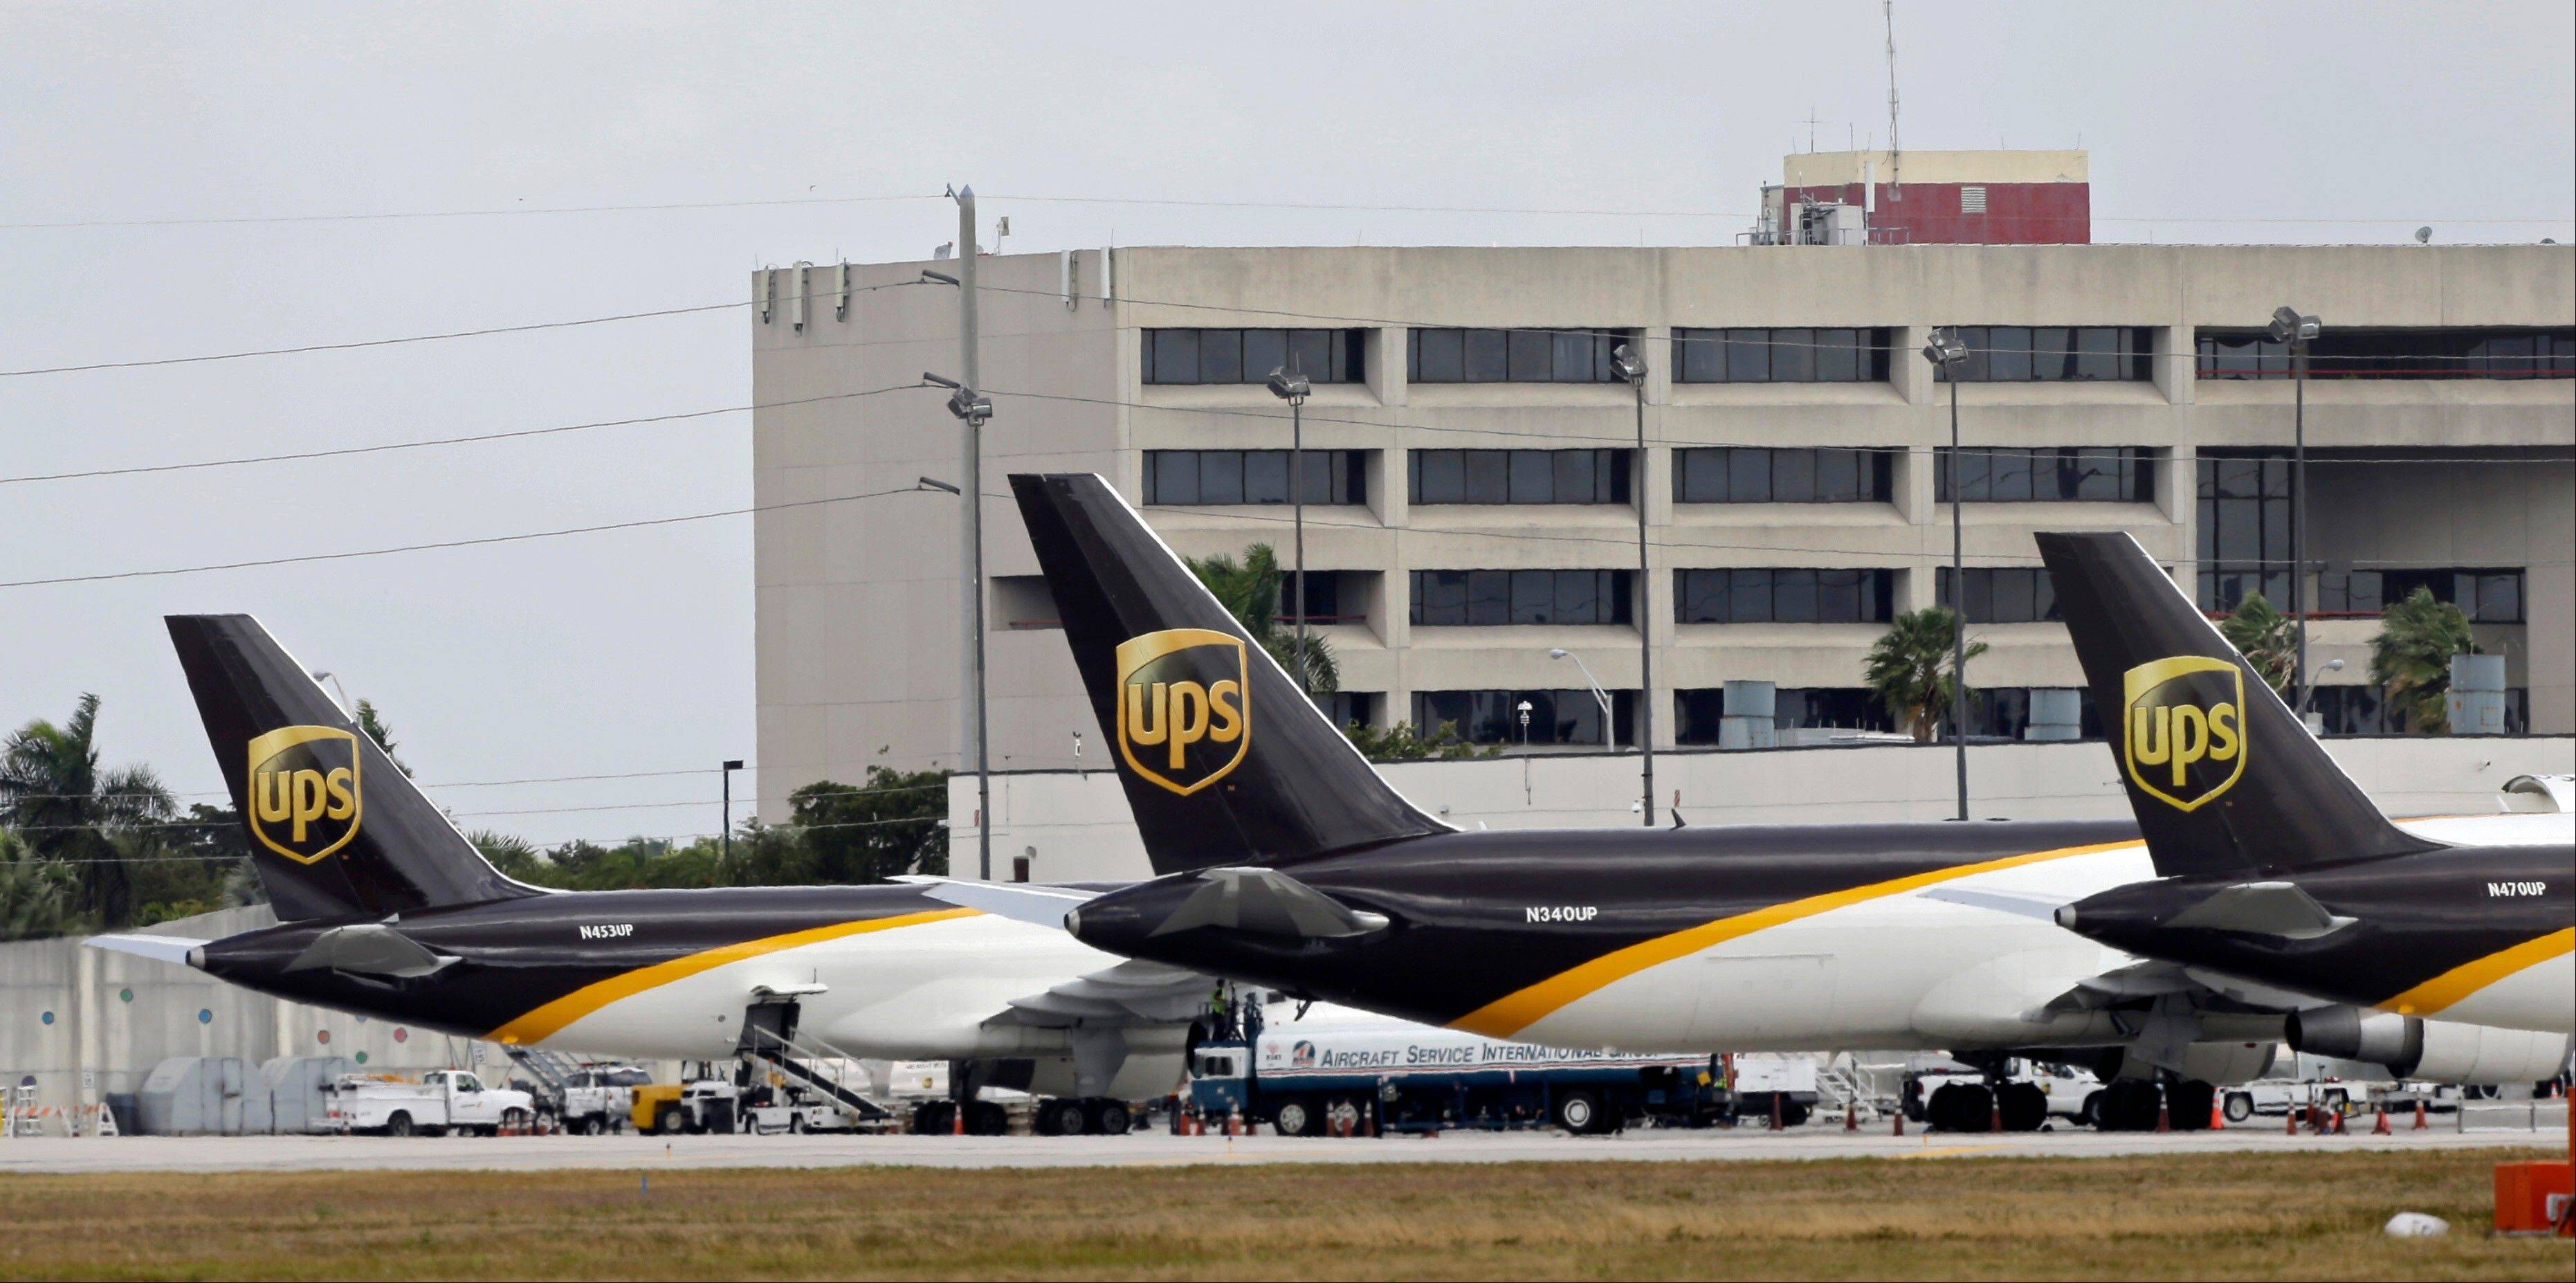 UPS said Tuesday that second-quarter profit fell 4 percent as customers shifted from premium toward lower-priced shipped services. The company called the results disappointing and said it was adapting to the changing market.